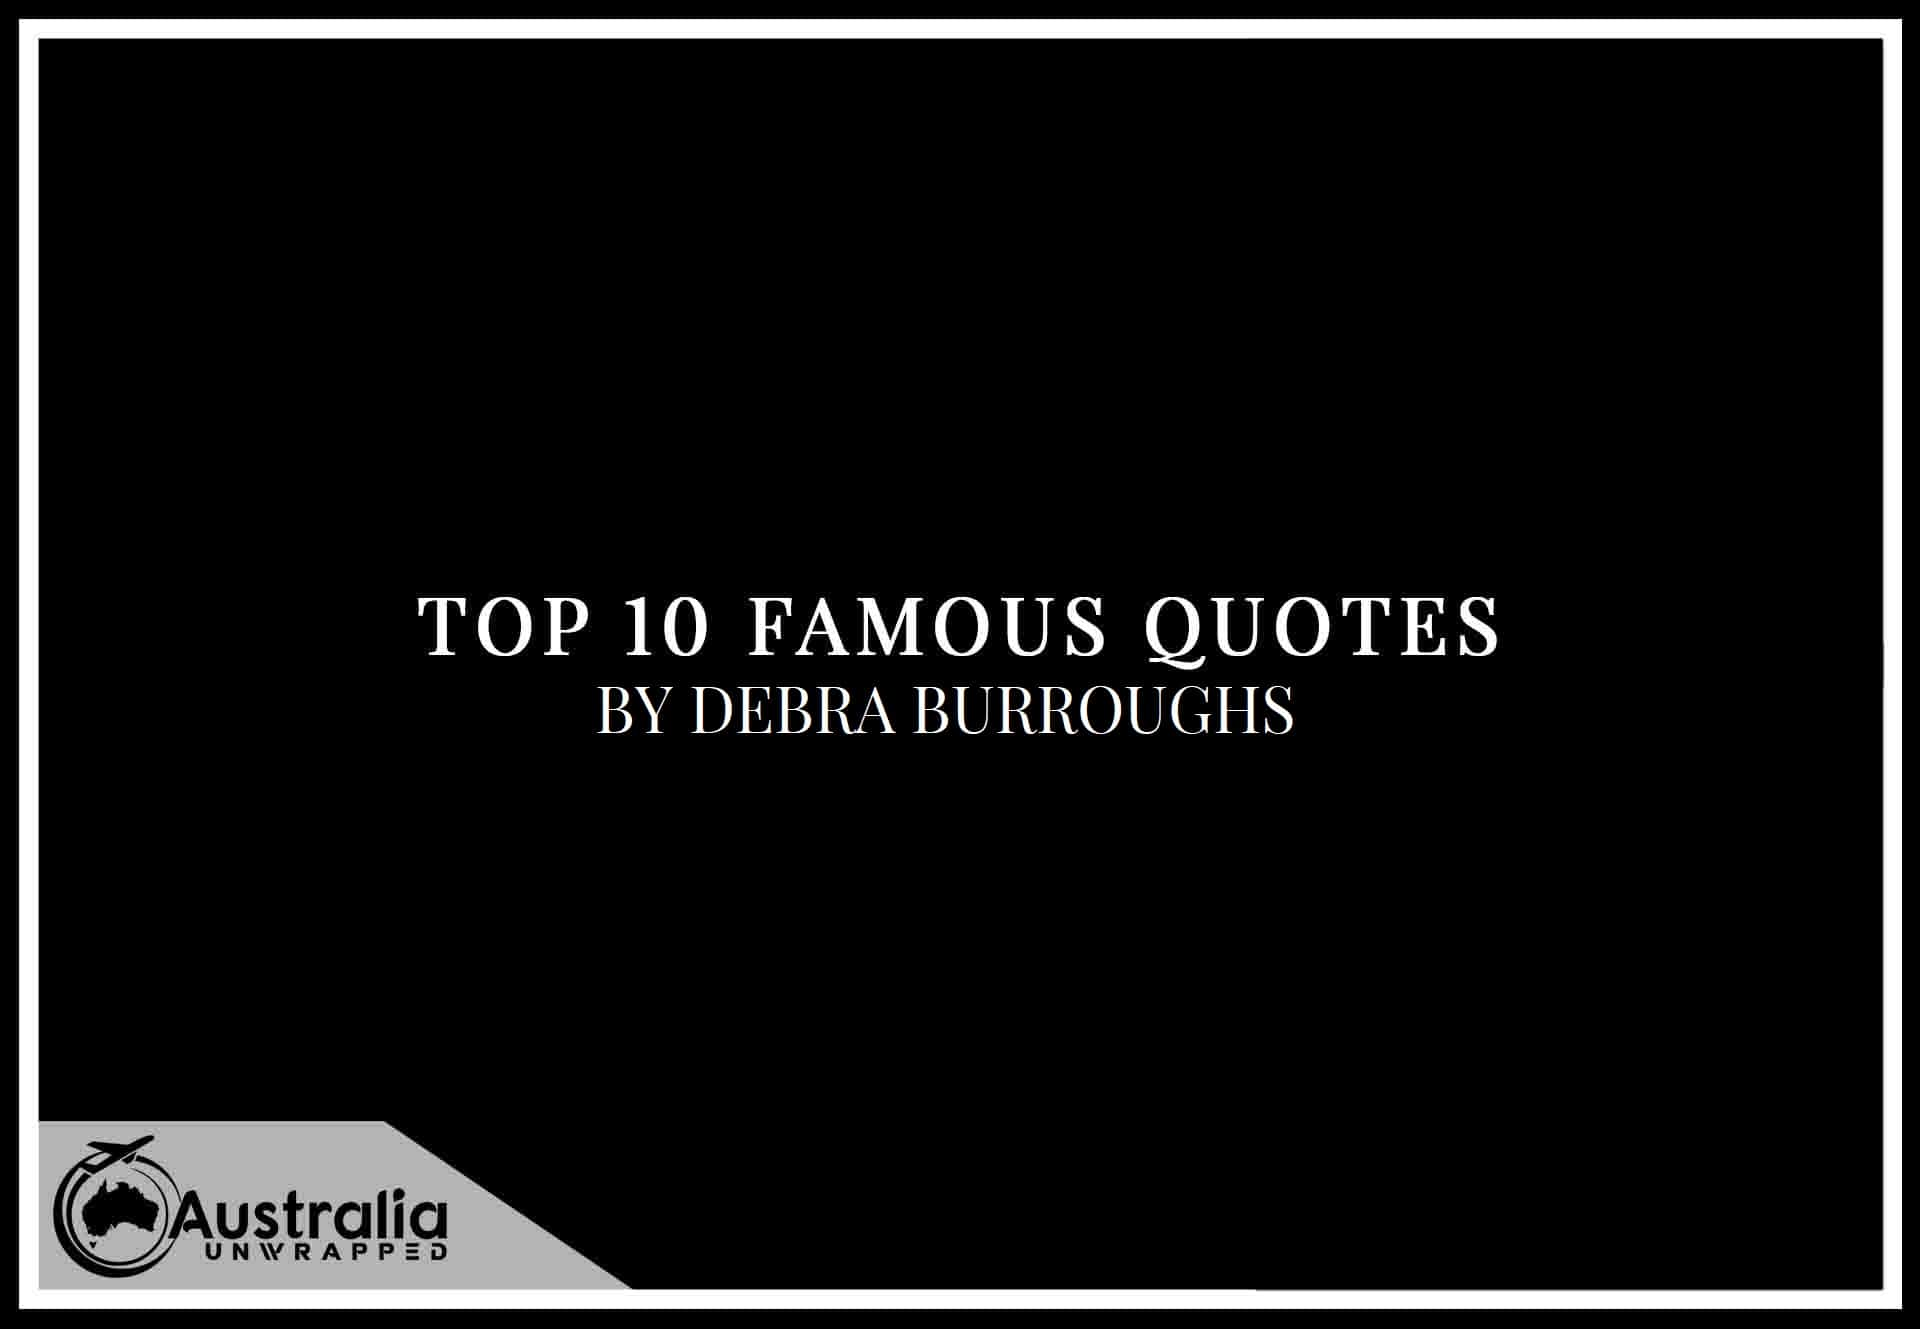 Top 10 Famous Quotes by Author Debra Burroughs